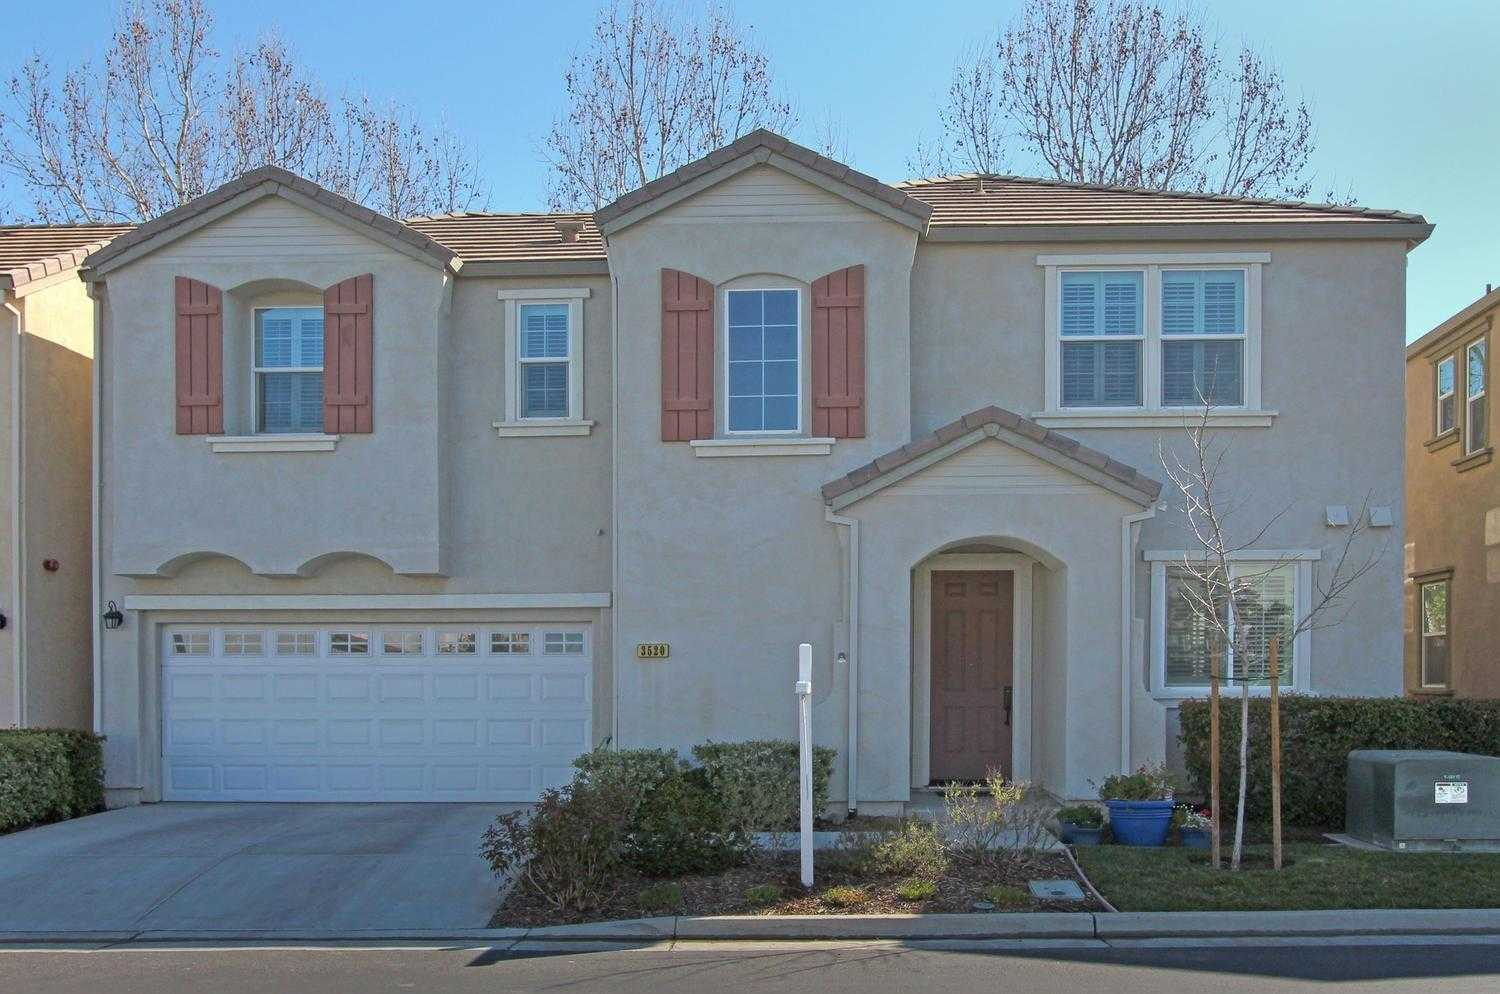 $689,000 - 3Br/3Ba -  for Sale in Verona, Davis